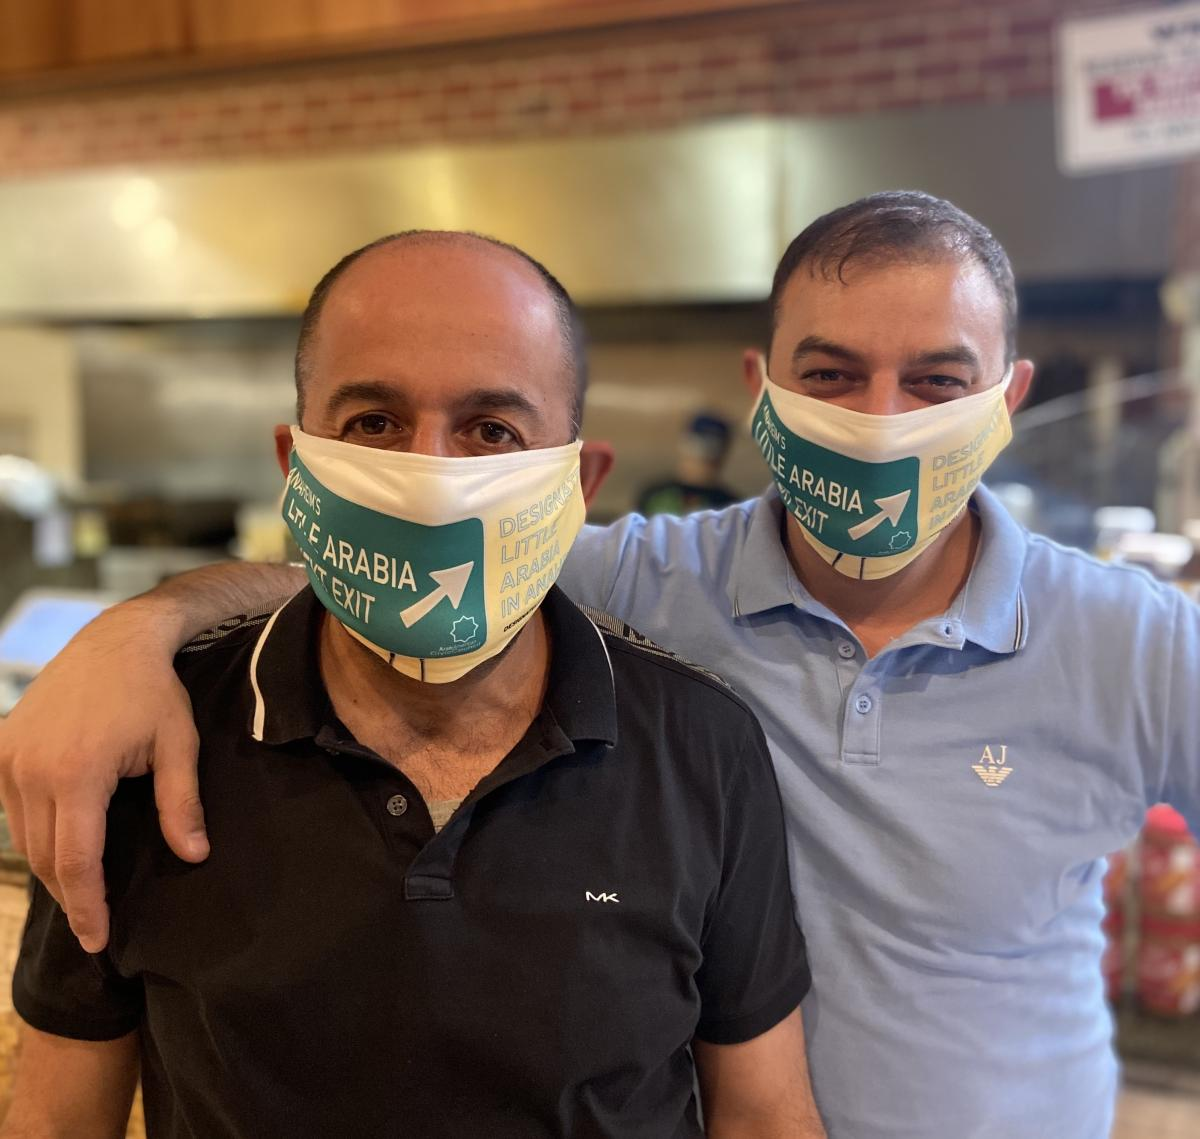 Ehab Elannan (left) the owner of Little Arabia Lebanese Cuisine and Bakery, believes that the designation is crucial to the community.